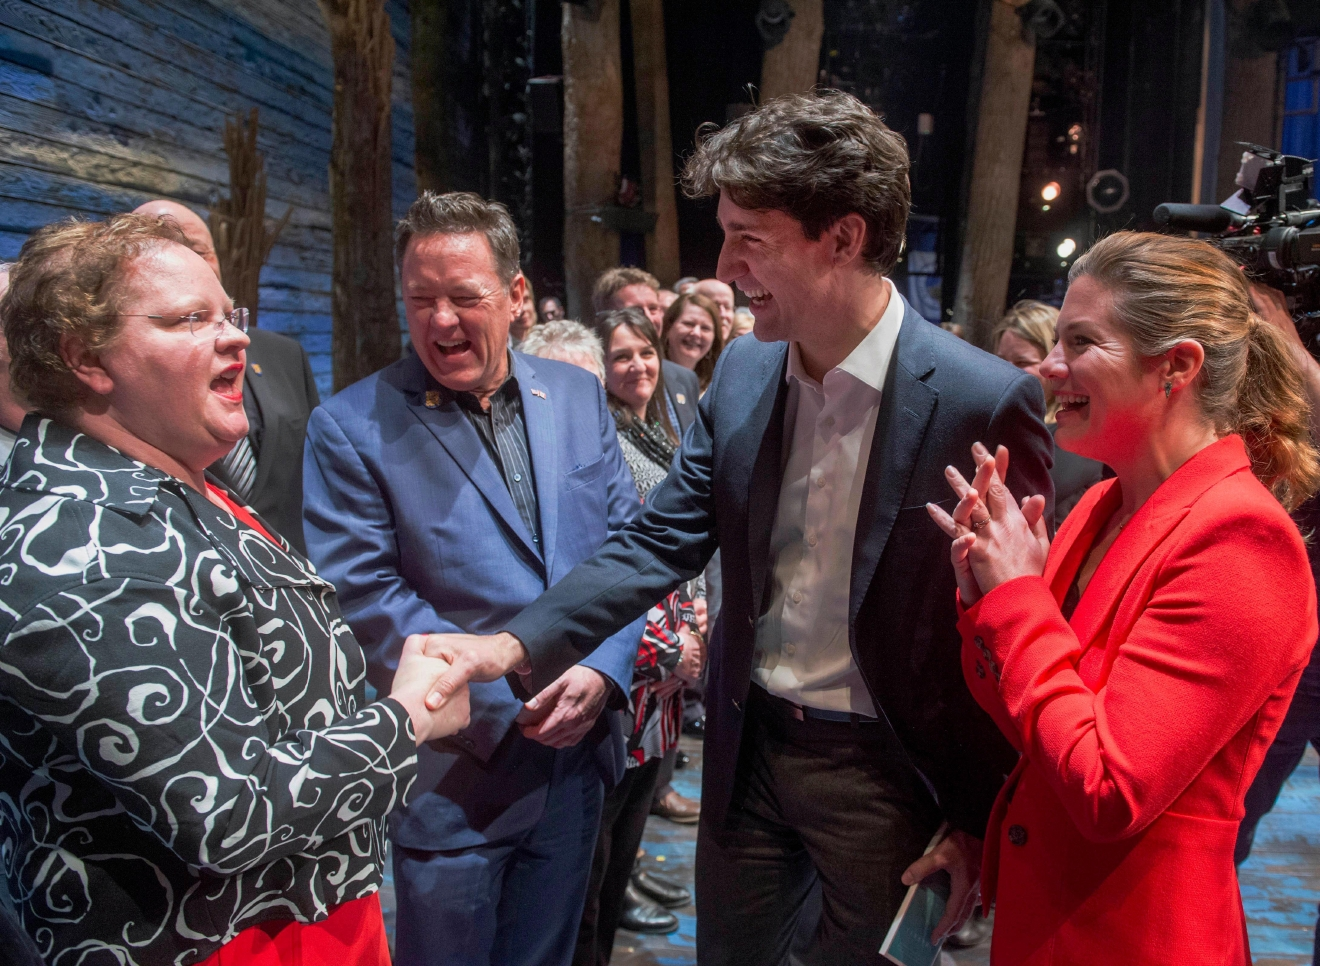 "Canadian Prime Minister Justin Trudeau, center, and his wife Sophie Gregoire chat with some of the citizens from Gander, Newfoundland, after the Broadway musical ""Come From Away"" in New York on Wednesday, March 15, 2017. Trudeau, along with first daughter Ivanka Trump, have welcomed the new musical that celebrates Canadian compassion following 9/11. The musical is set in the small Newfoundland town of Gander, which opened its arms and homes to some 7,000 airline passengers diverted there when the U.S. government shut down its airspace. (Ryan Remiorz/The Canadian Press via AP)"